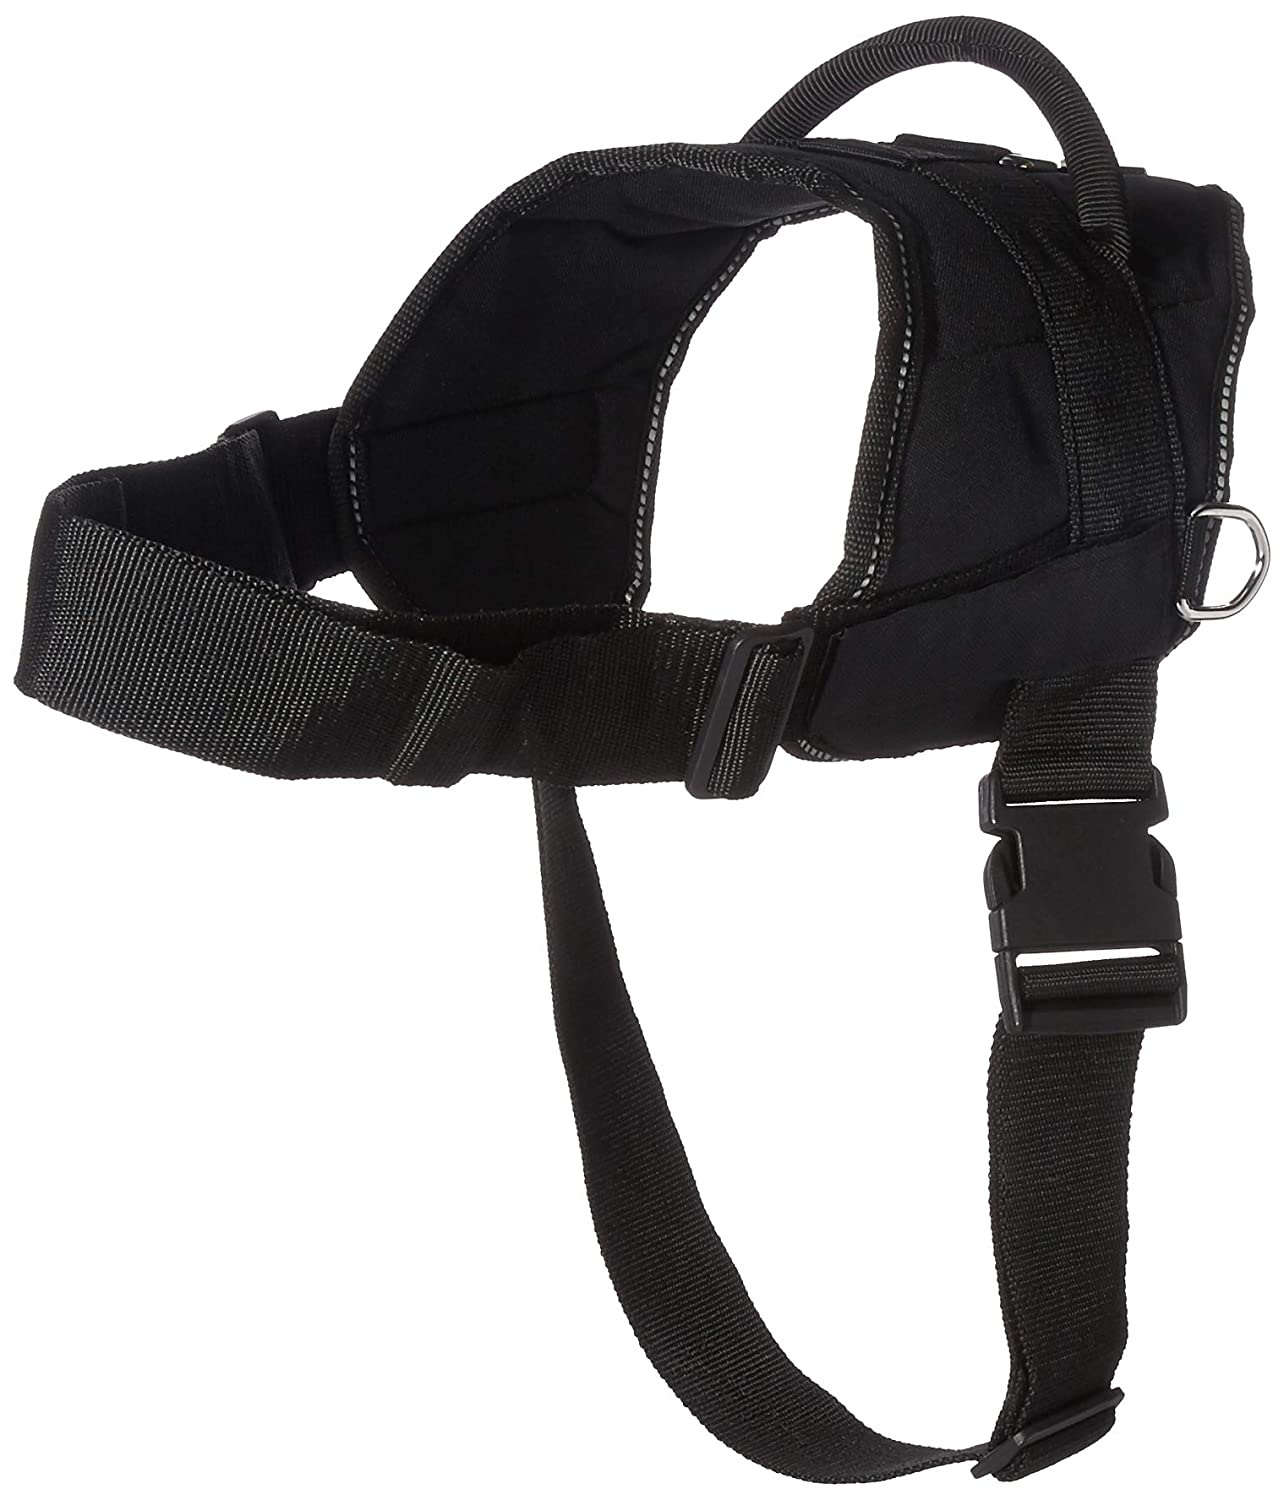 Dean & Tyler Fun Works Harness, Emotional Support Animal, X-Large-Fits Girth Size  34-Inch to 47-Inch, Black with Reflective Trim